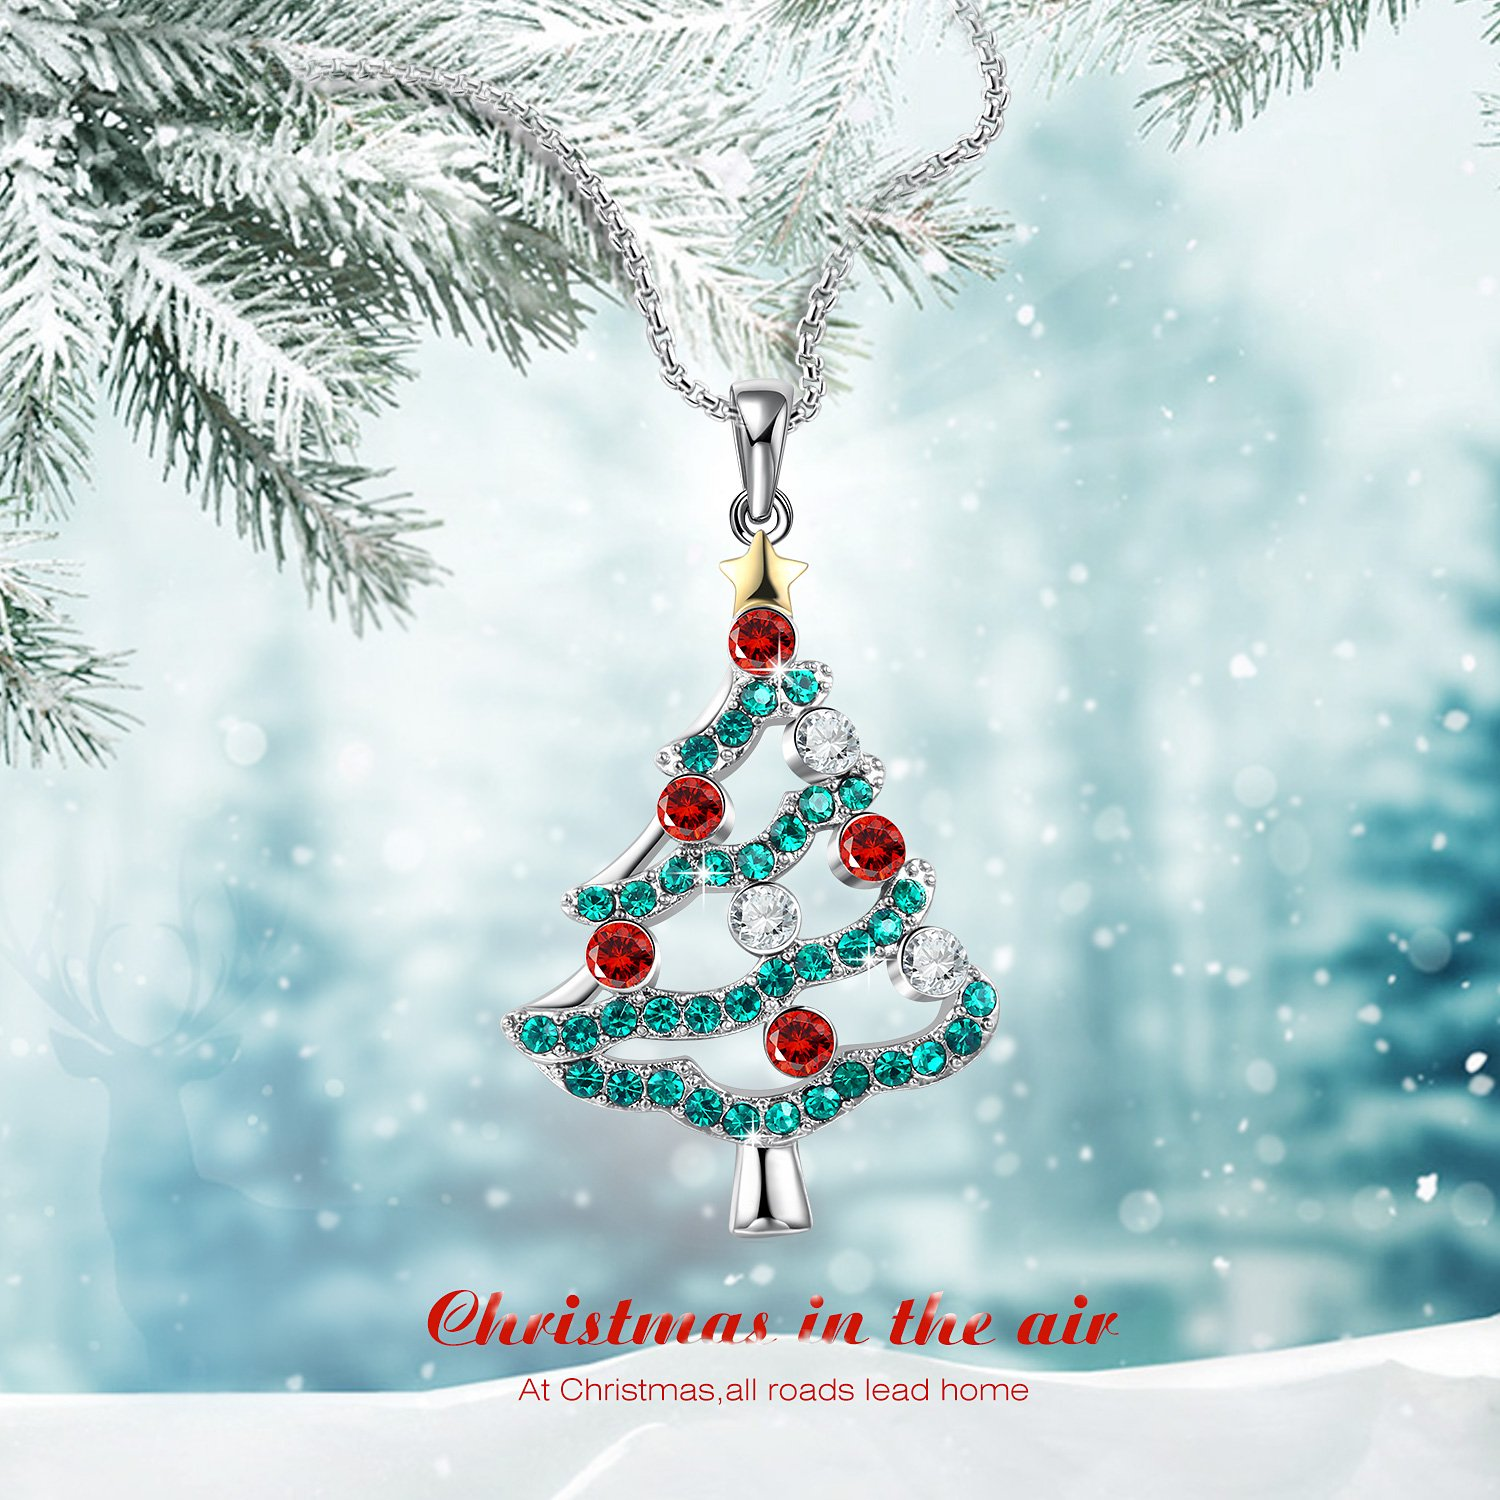 Christmas In The Air.George Smith Christmas In The Air Christmas Tree Pendant Necklace Gifts For Girls Daughter Wife Mother Crystals From Swarovski